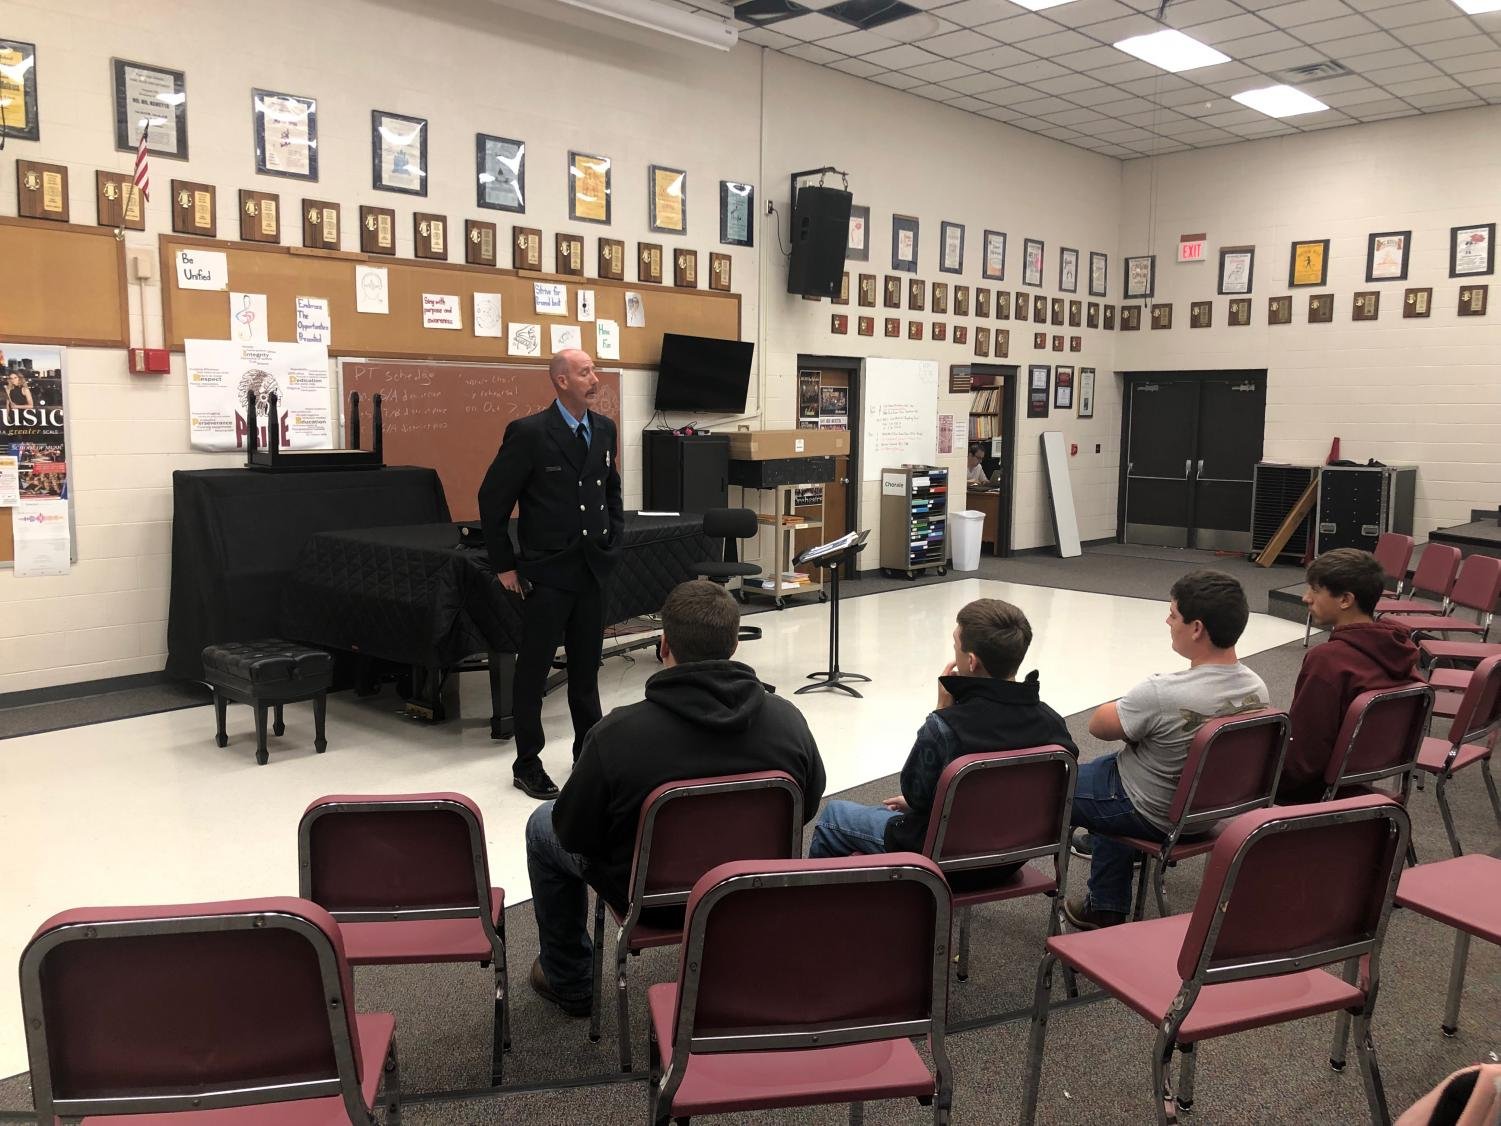 Firefighter and EMT Travis Hageman had to be called back to the station during the presentation, but he still had the chance to answer a few of the students' questions. A total of 15 students attended the meeting in the vocal room.